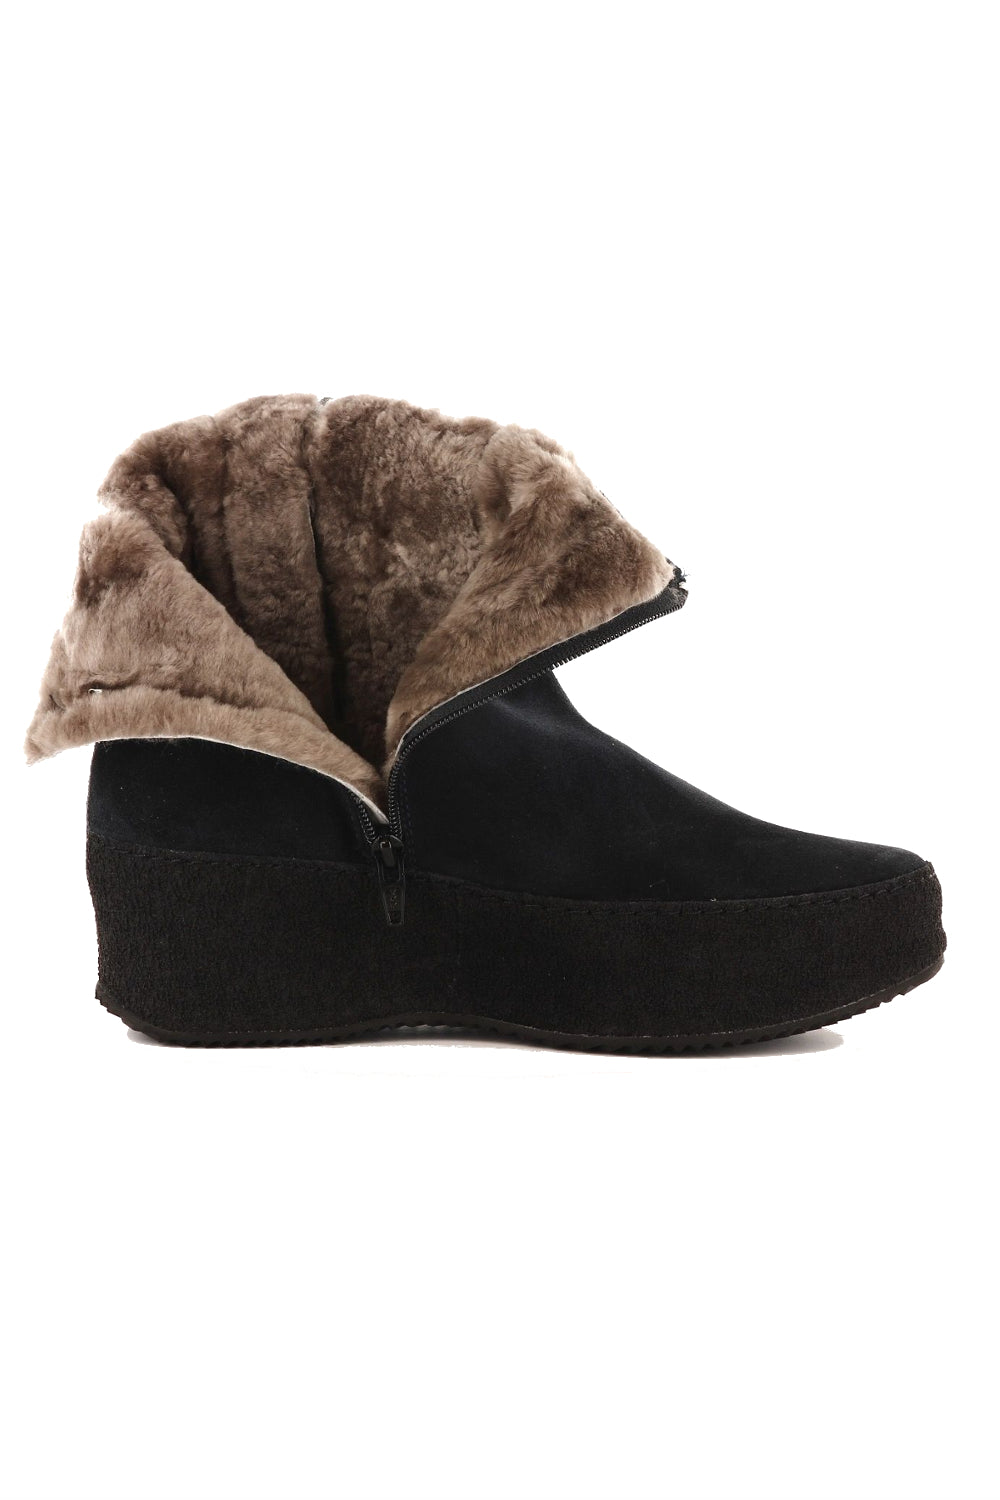 Nude of Scandinavia Curling Boot in Black Suede